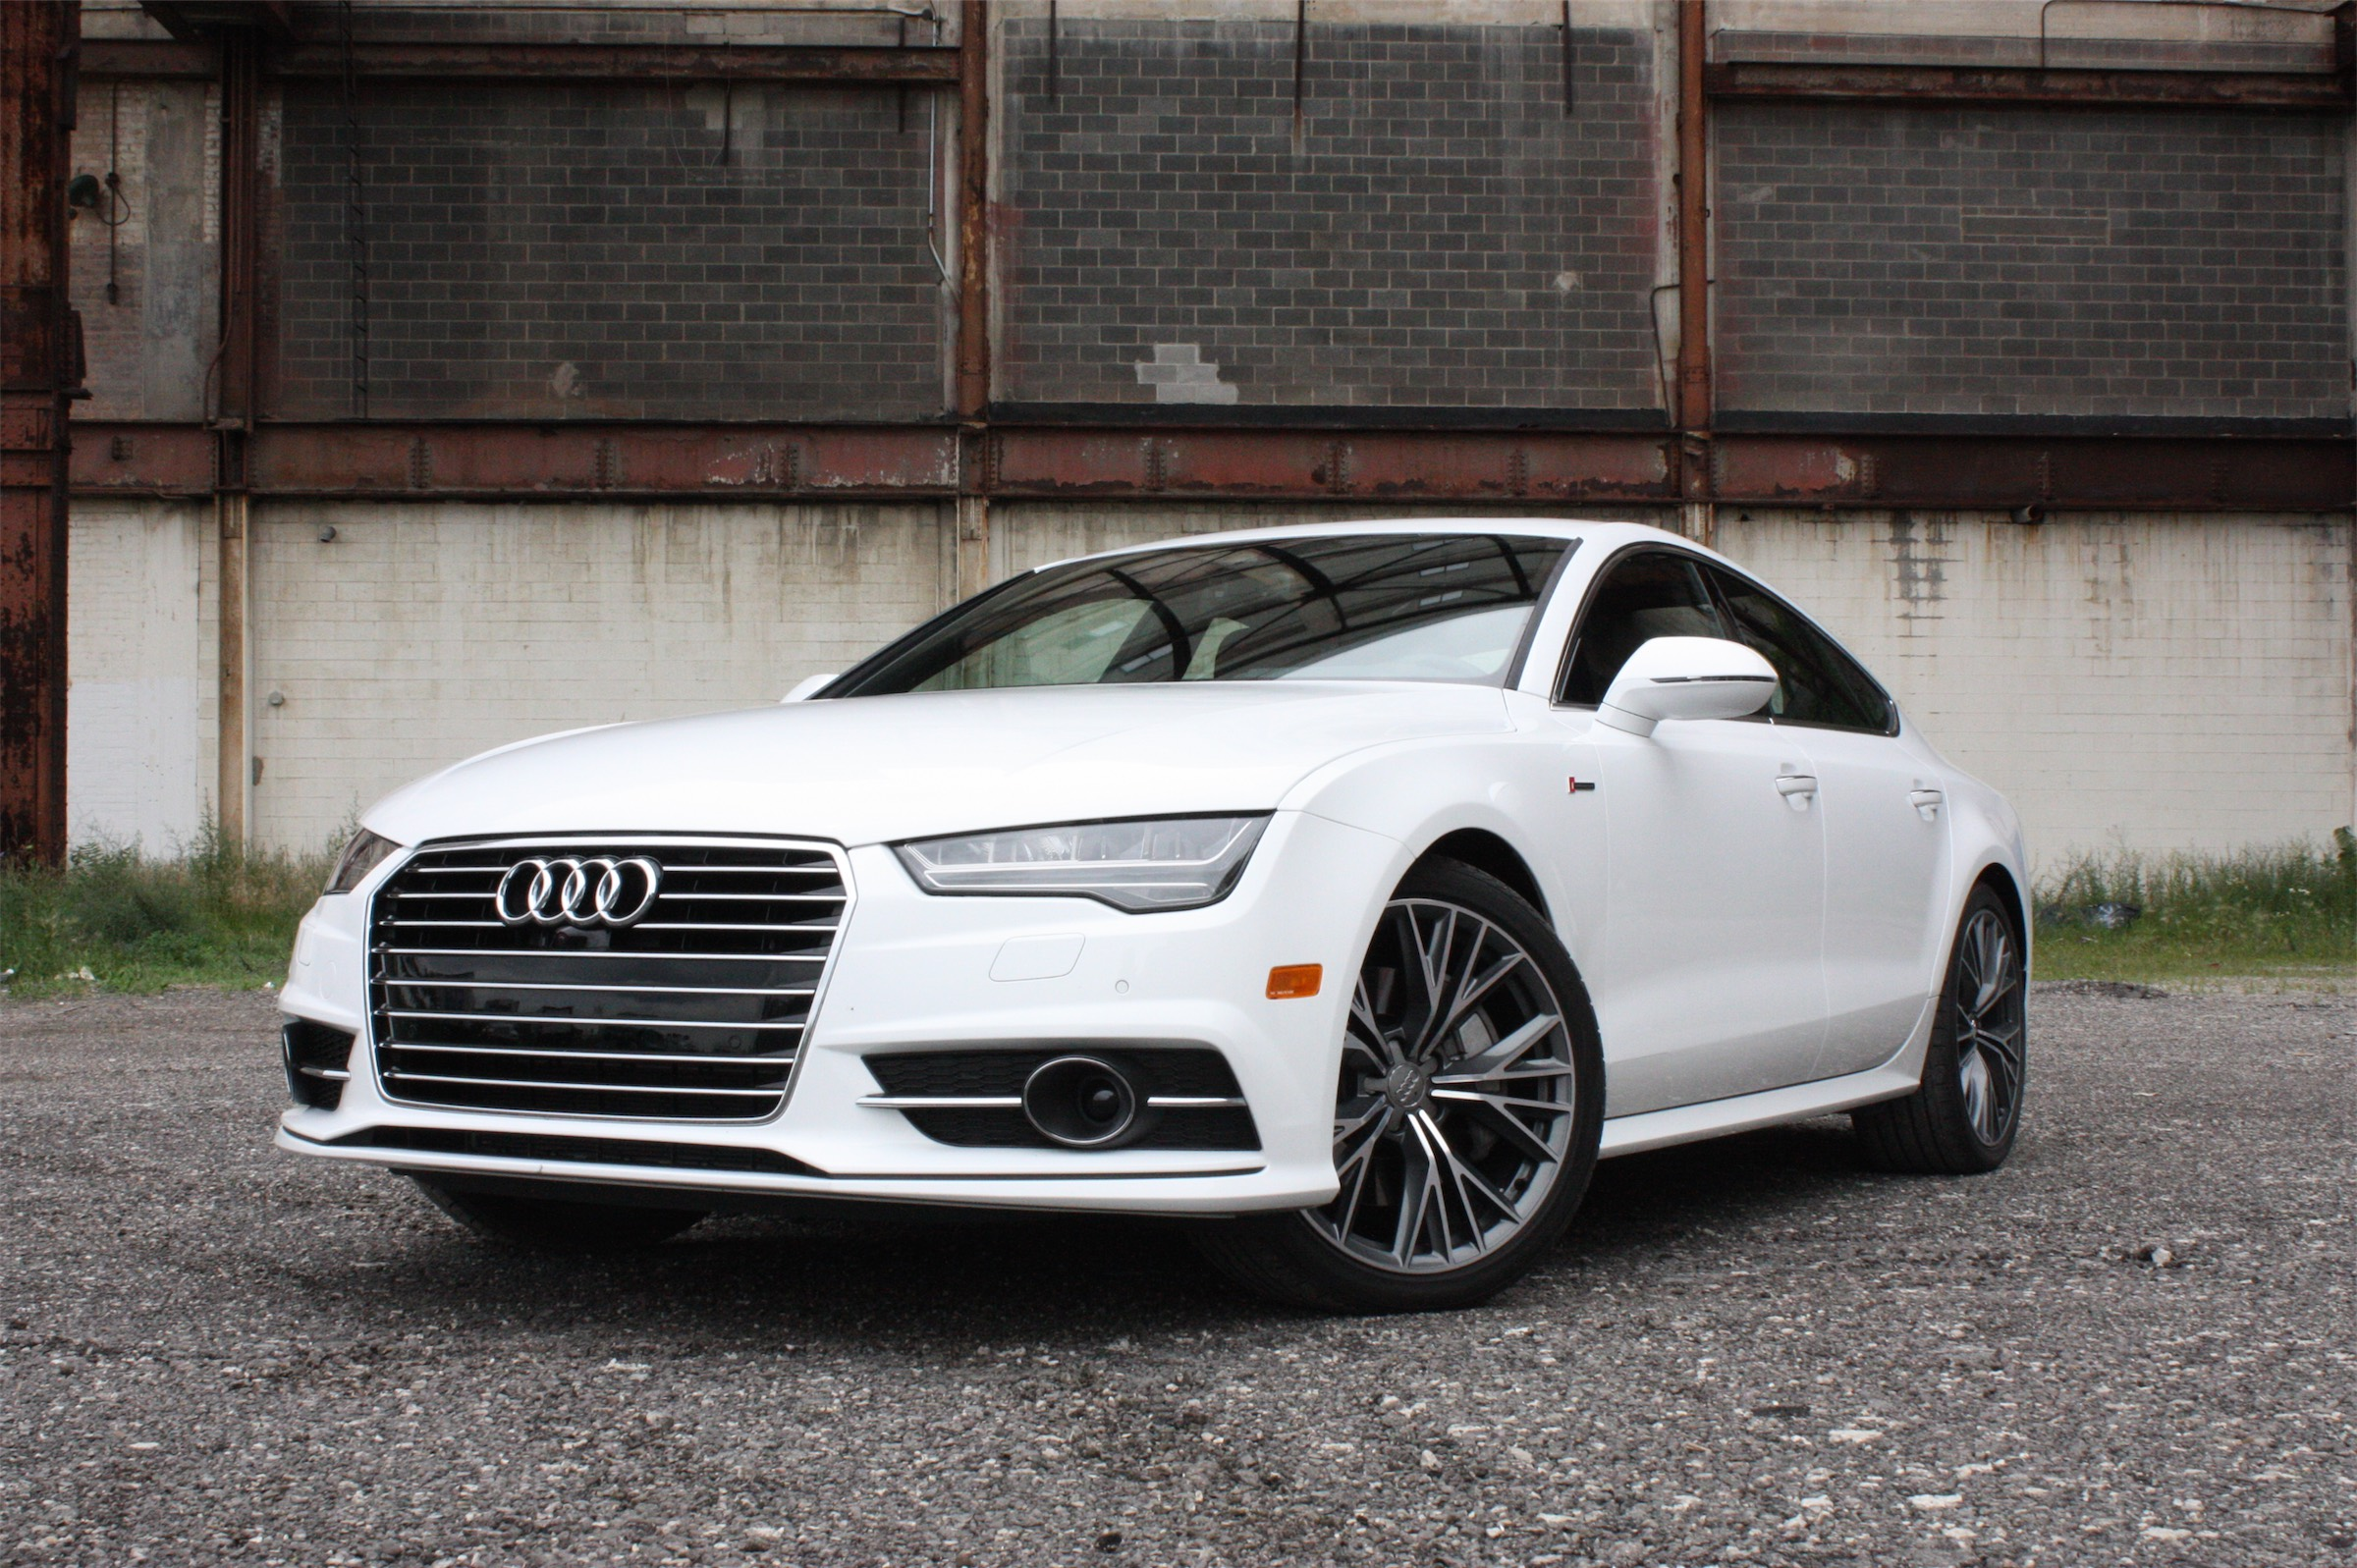 2016 audi a7 review cnet. Black Bedroom Furniture Sets. Home Design Ideas